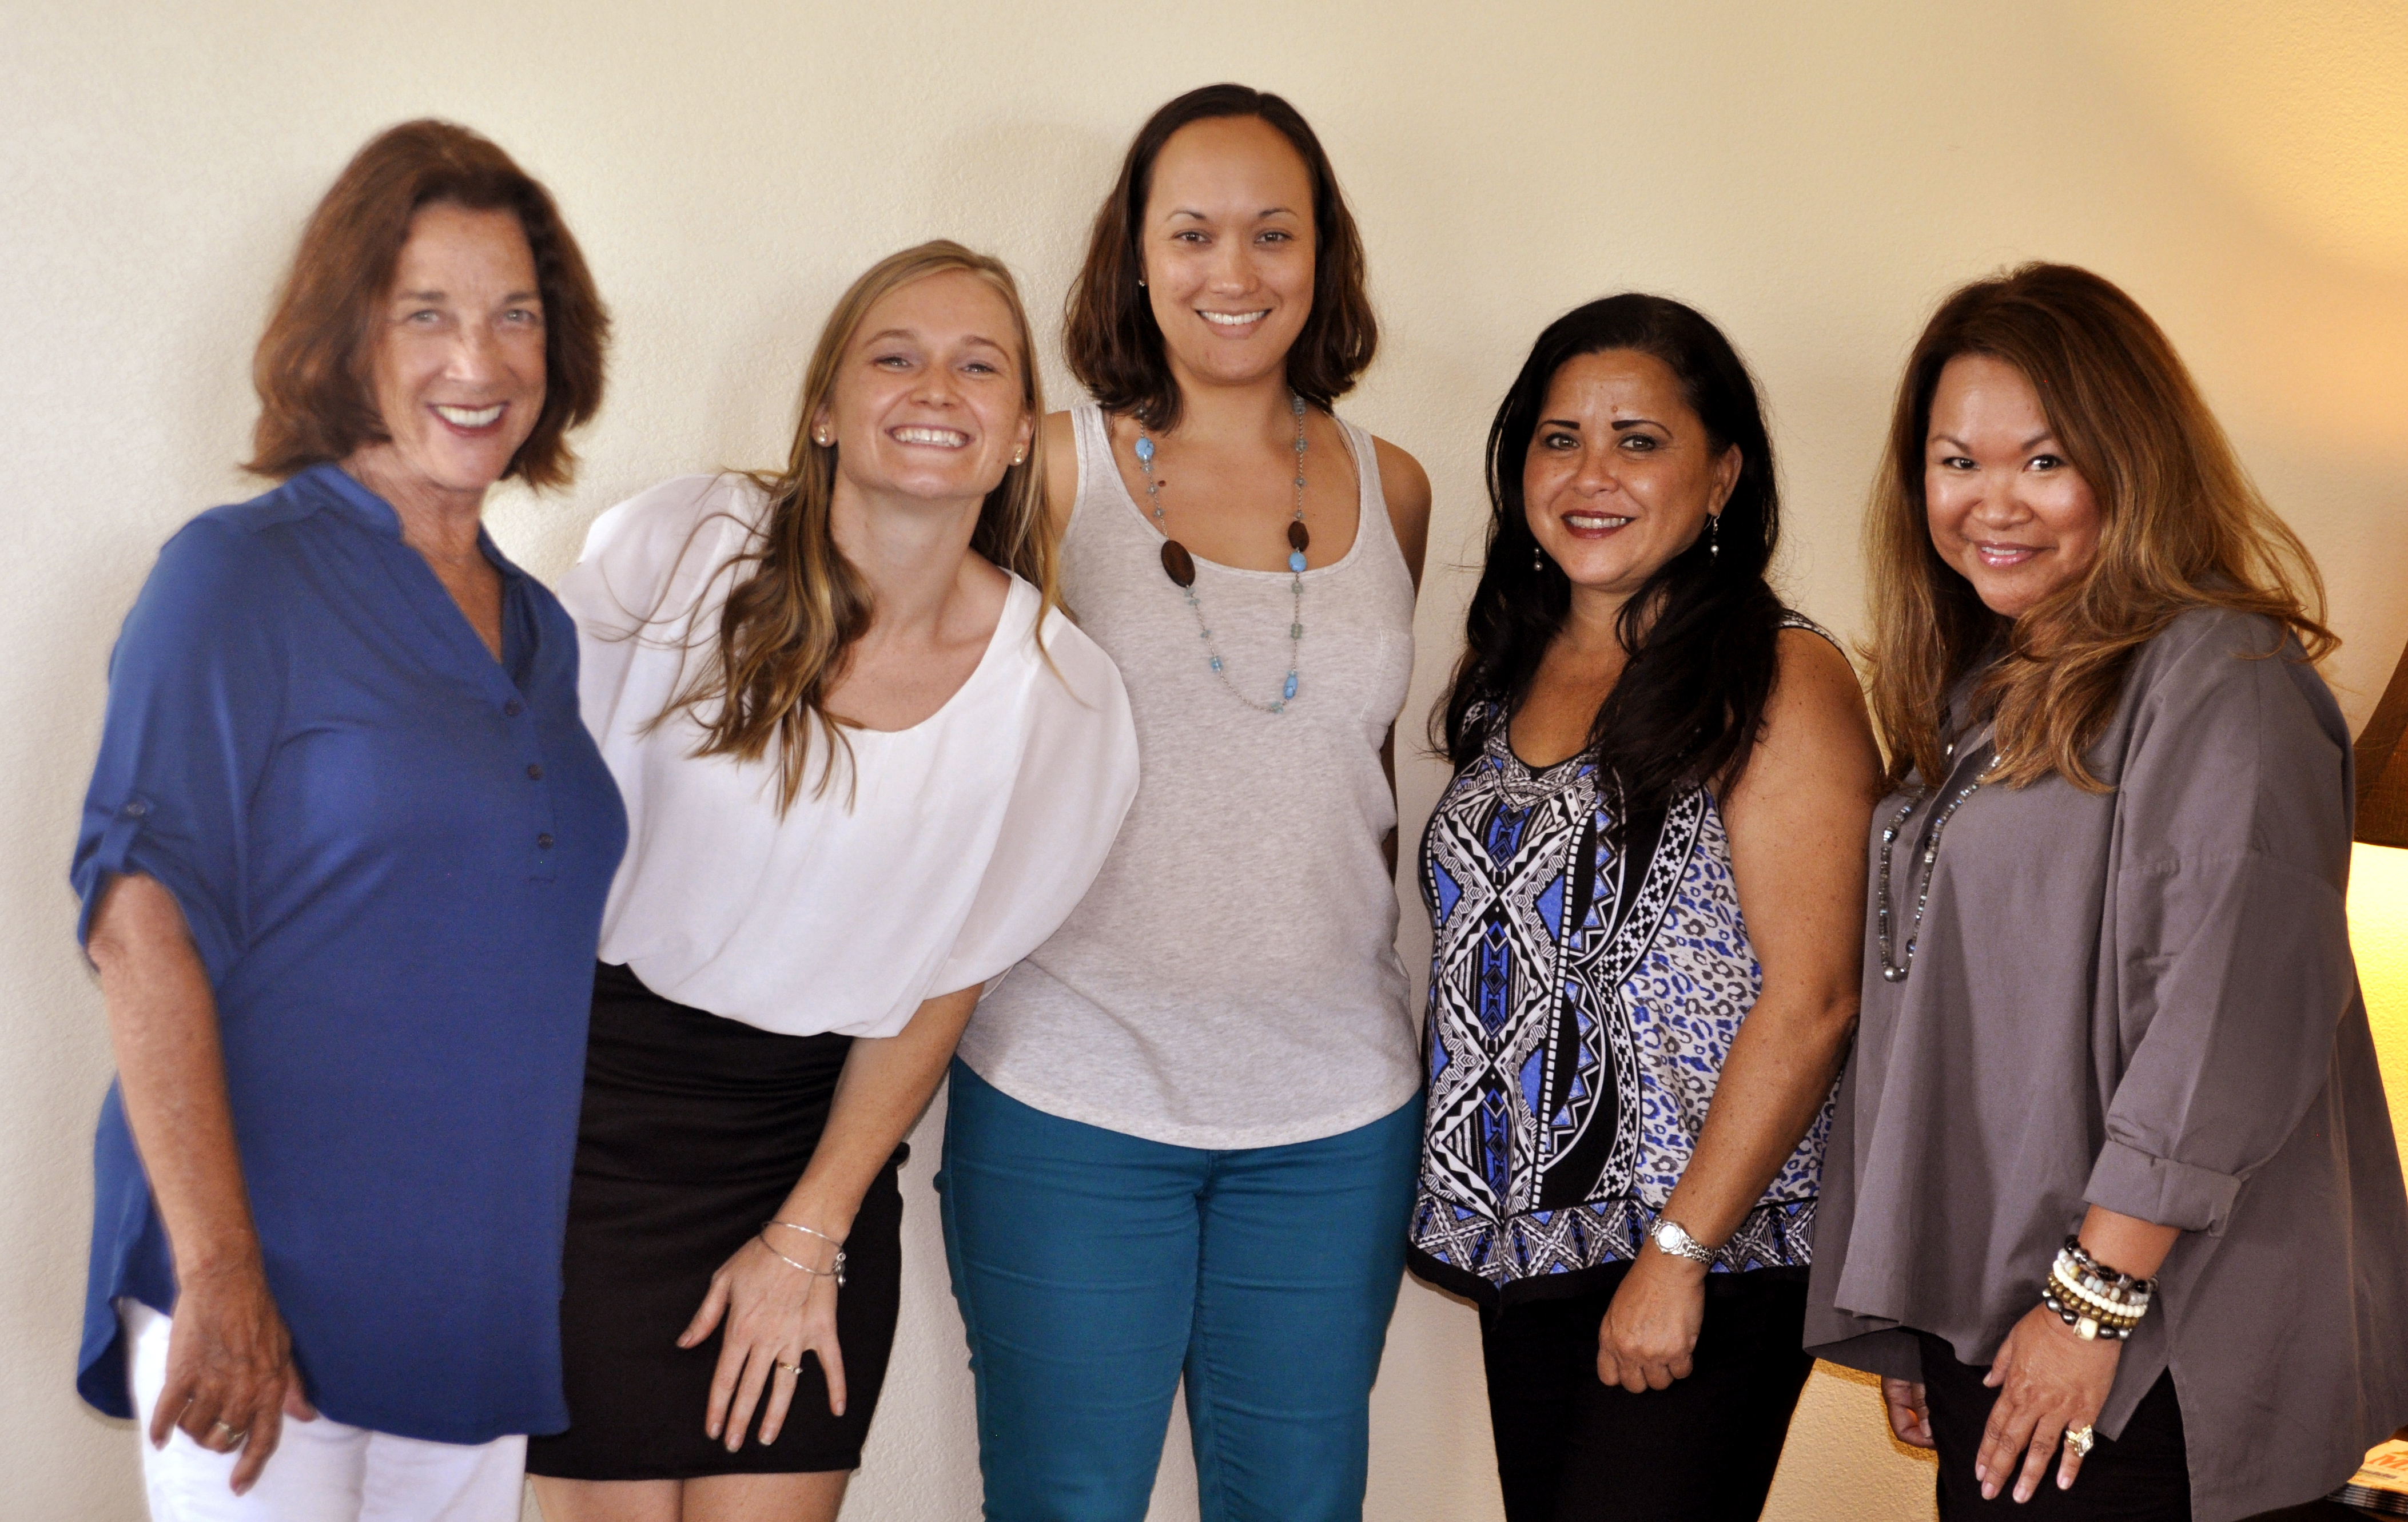 Summer 2014 session: ( left to right) Francesca Carey of Fabmac Homes, Danielle Miller of Miller Media Management, Elizabeth Tomoso of Momma Love Baby Maternity, Francine Fernandez of Sassy Things Maui and Jennifer Powell of Wailea Realty.